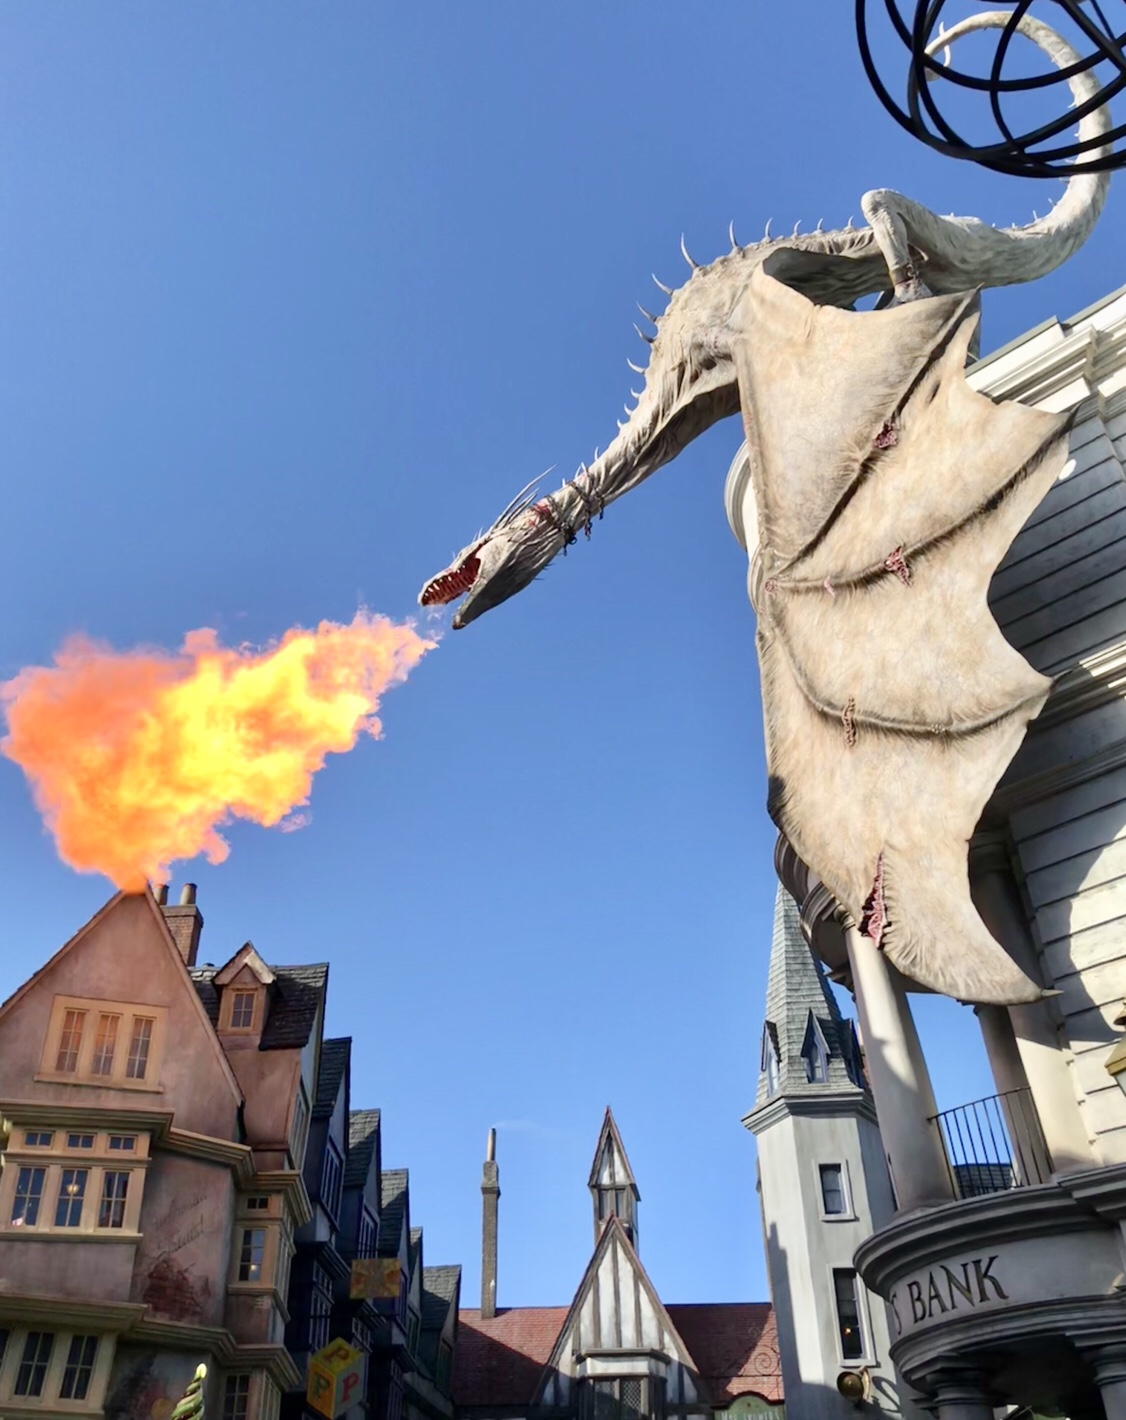 Fire Breathing Dragon | The Wizarding World of Harry Potter #grigottsbank #harrypotter #universalorlando #harrypotterdragon #diagonalley